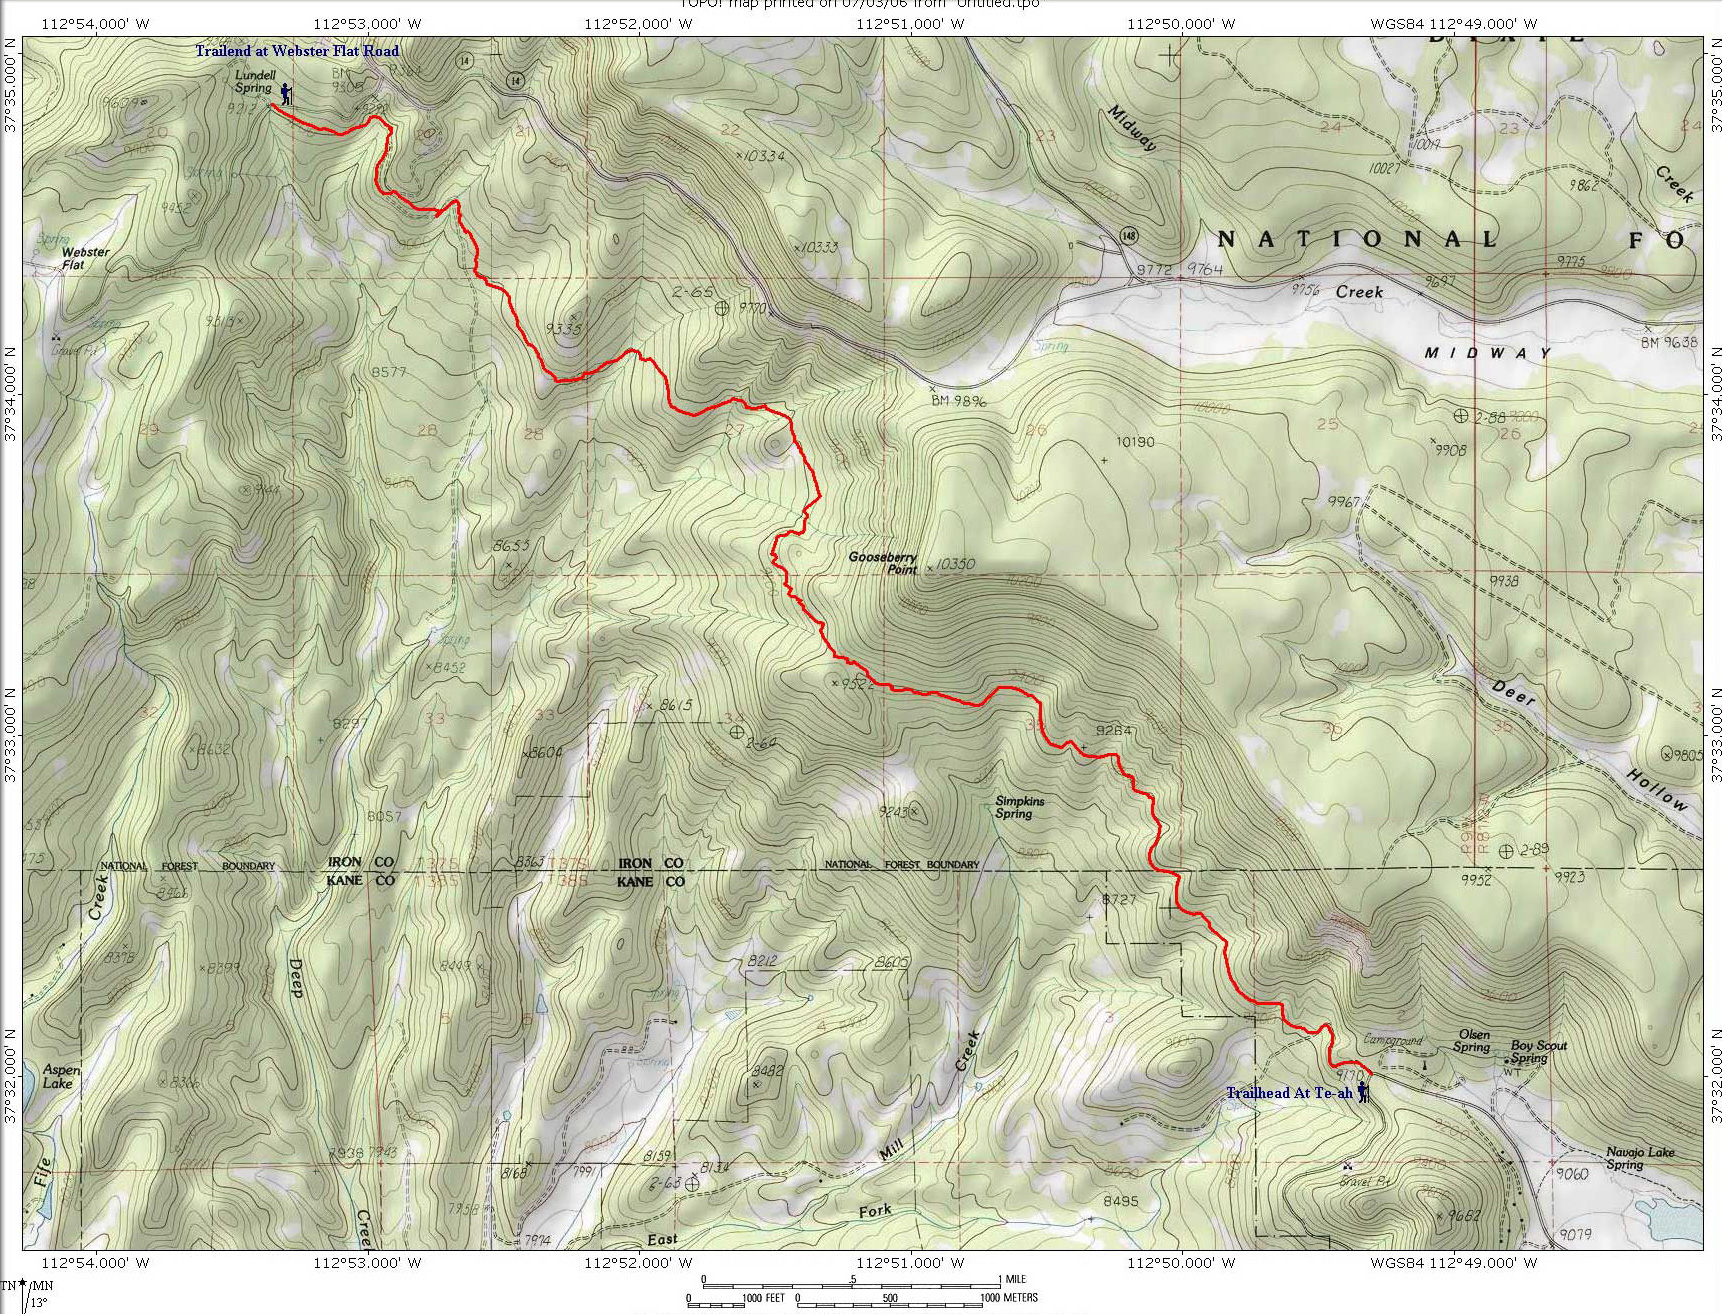 Map Virgin River Rim Trail - Te-ah Trailhead at Navajo Lake to Webster Flat